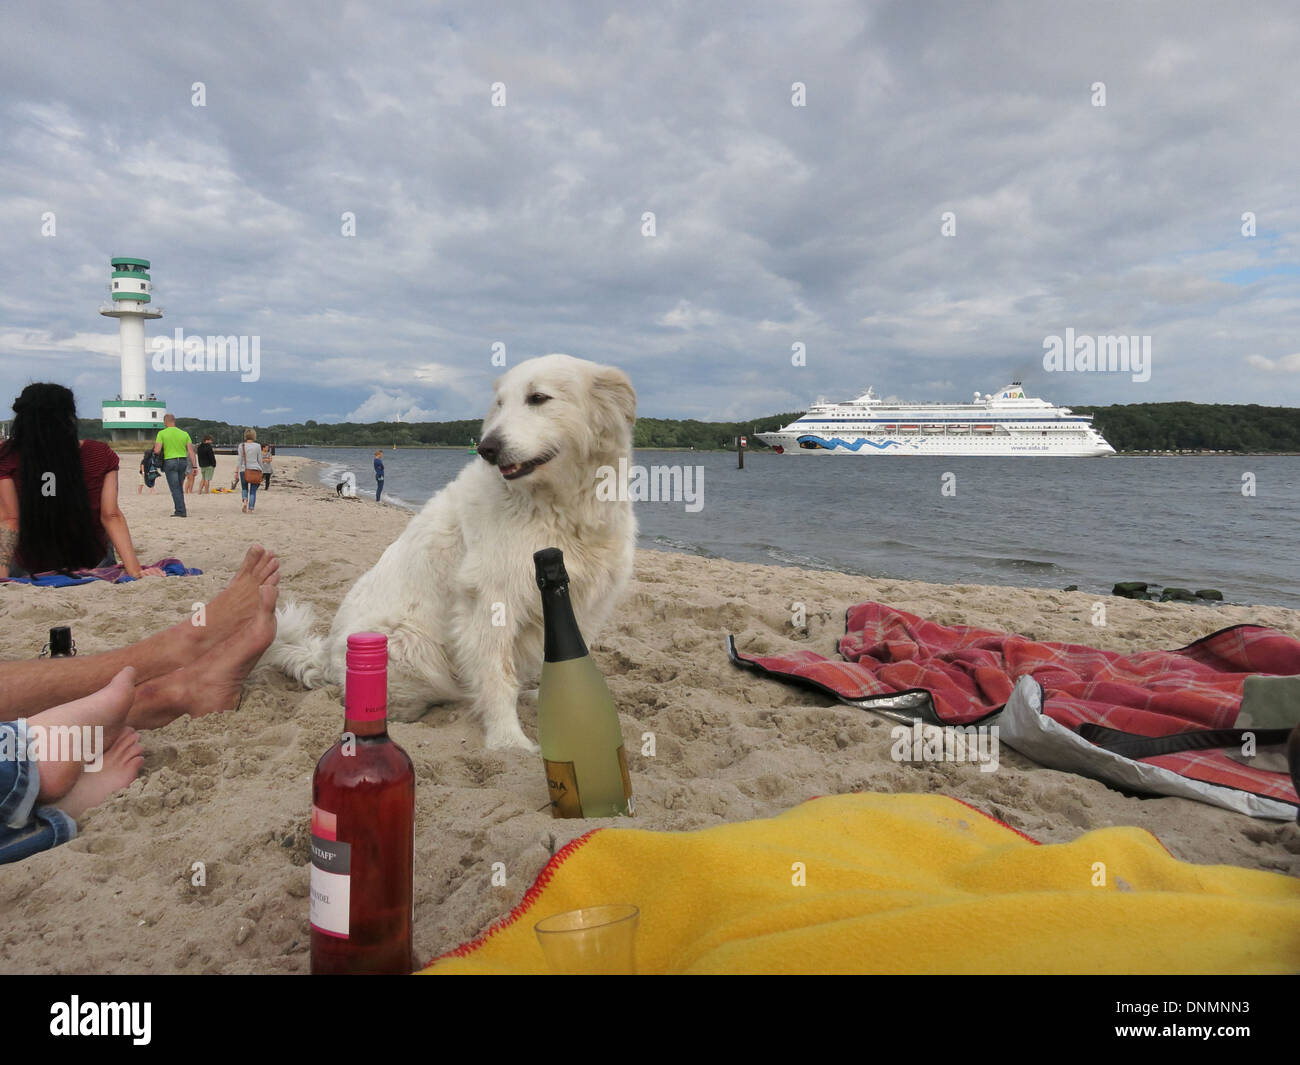 Kiel, Germany, visitors at Falckensteiner beach with a cruise ship - Stock Image